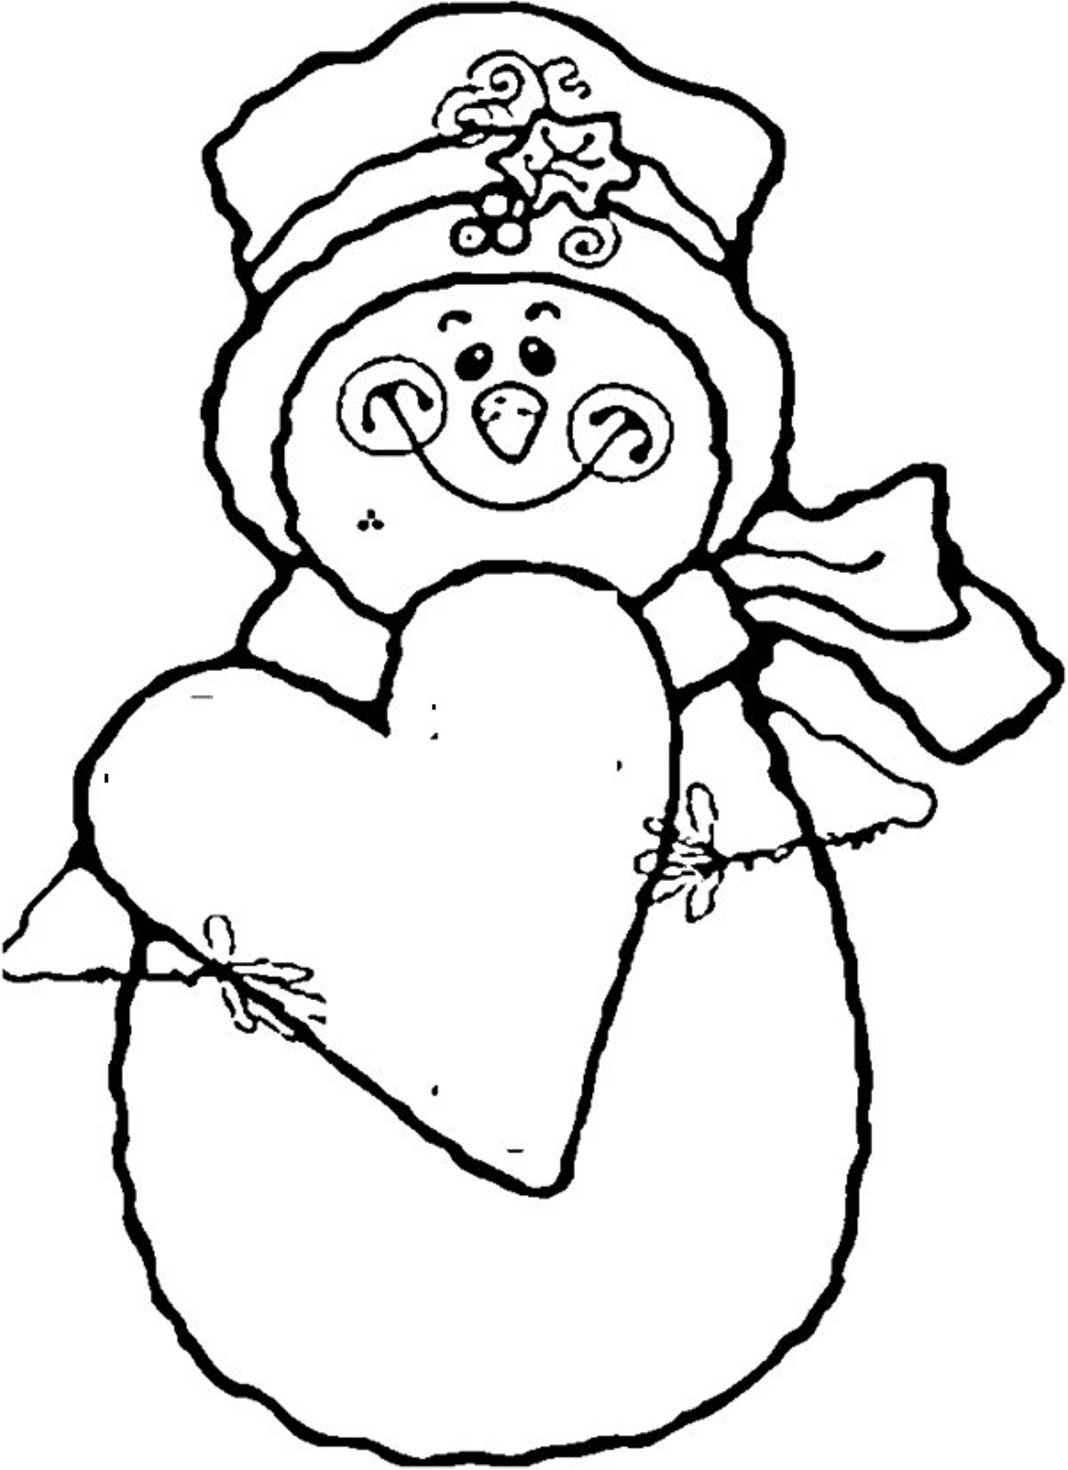 Download Snowman Coloring Pages To Print